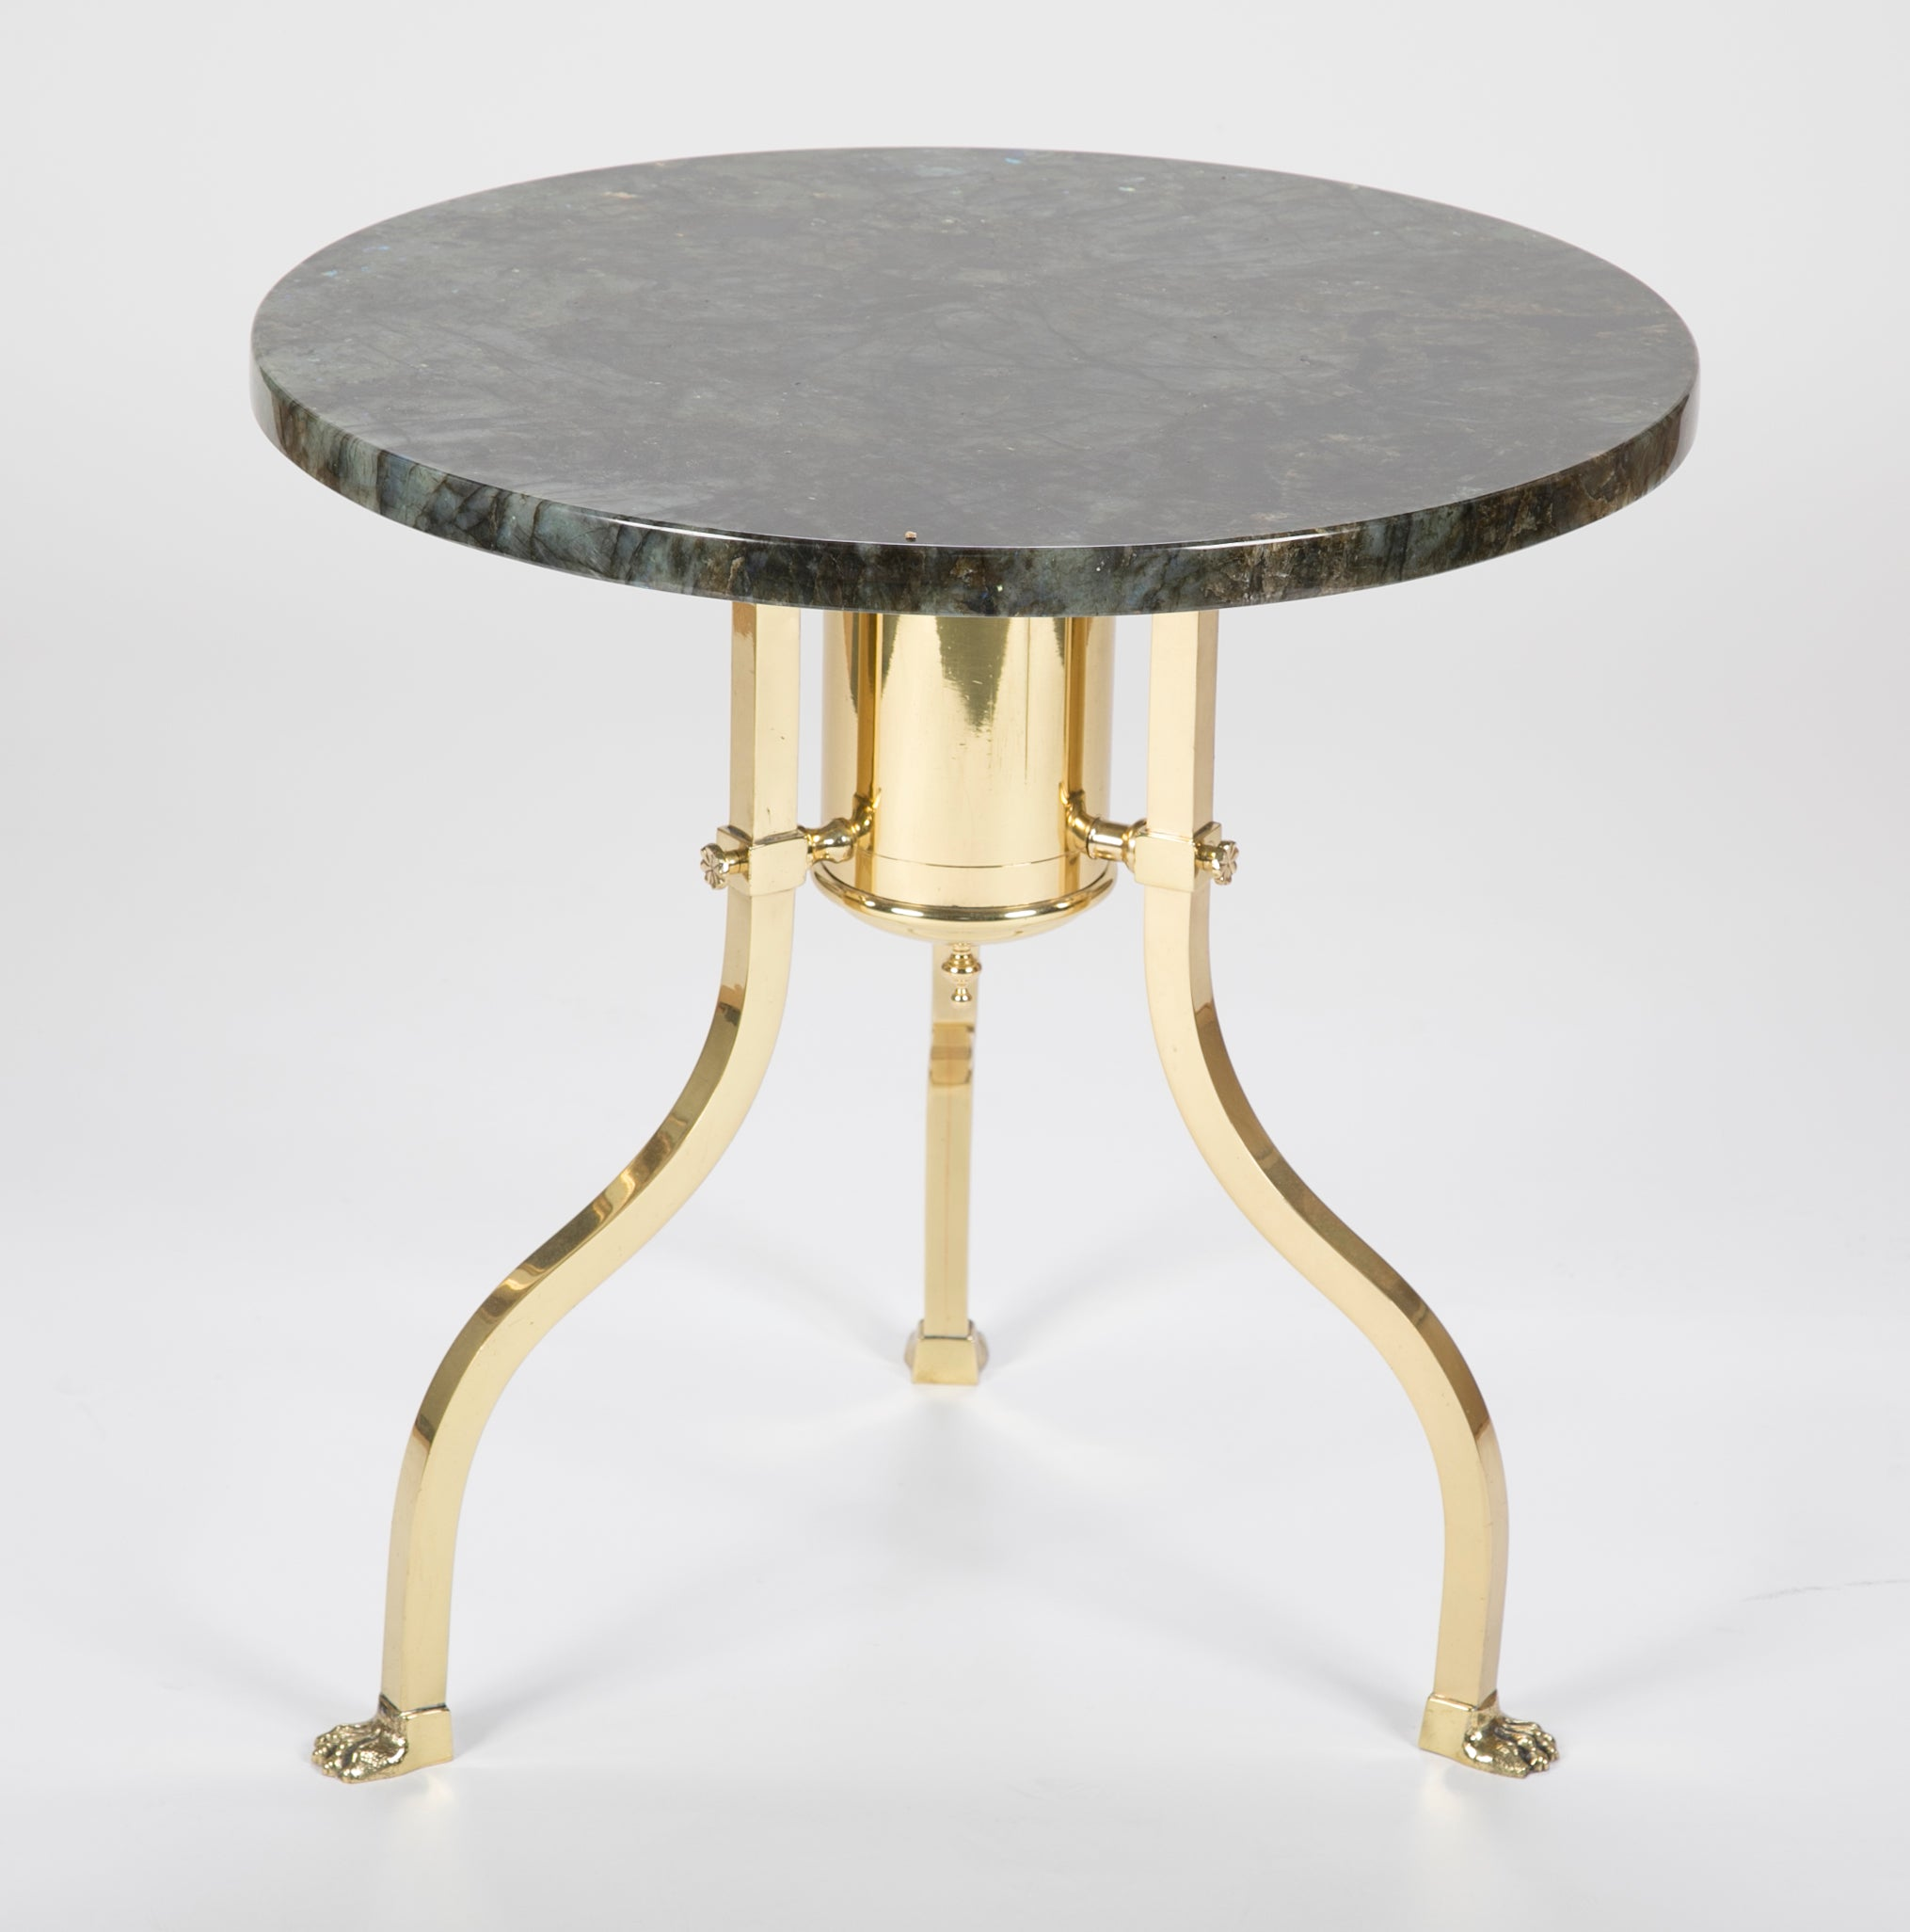 Marble Top Brass Coffee Table.Round Marble Top Brass Side Table